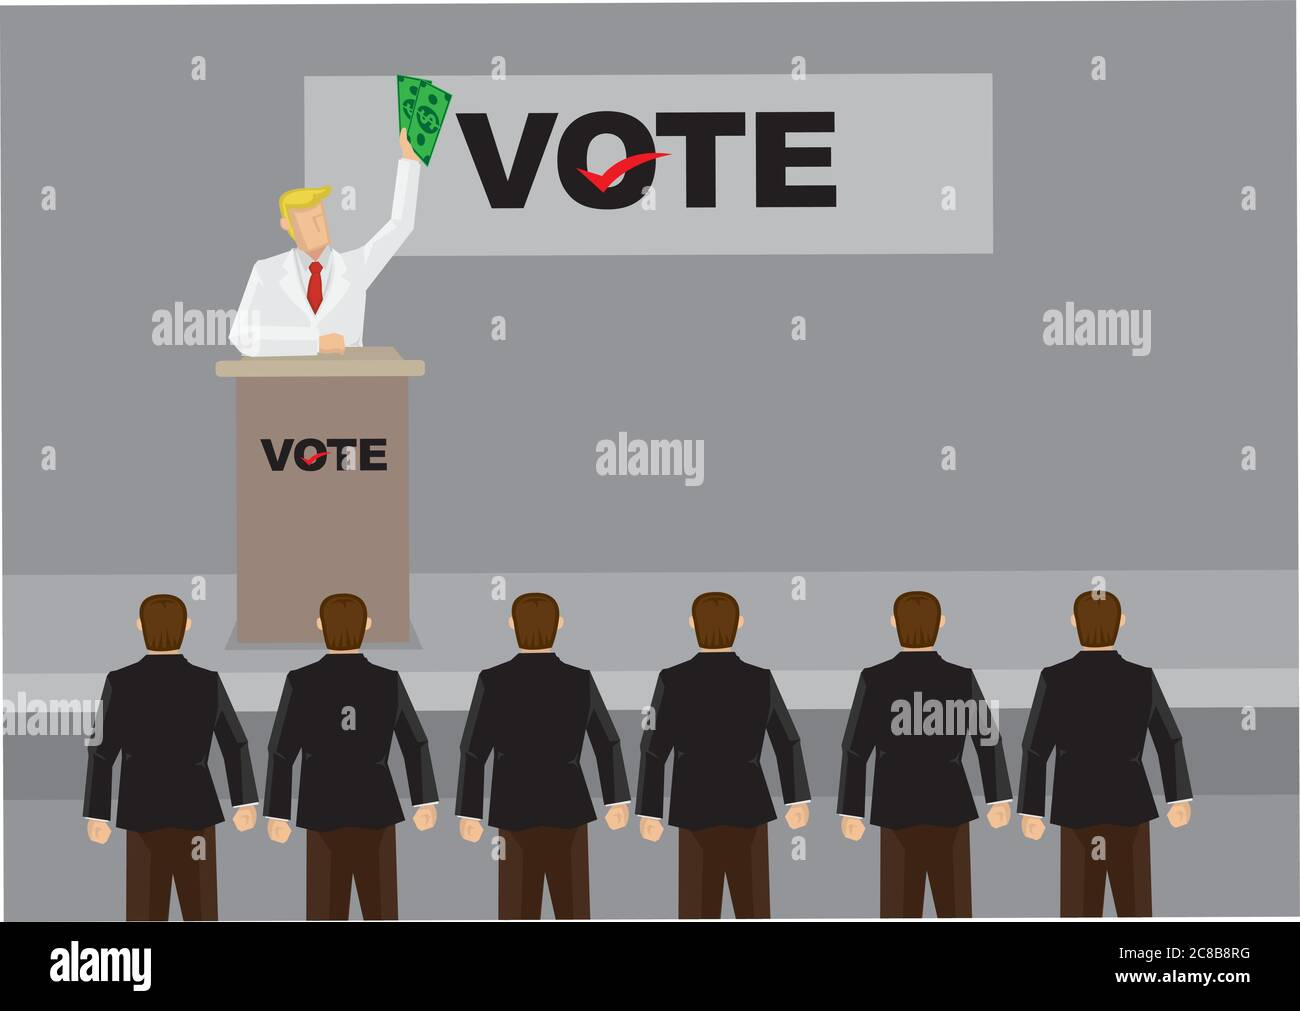 Rich business man waving money and giving speech on stage with banner on background with title VOTE. Cartoon vector illustration on voting isolated on Stock Vector